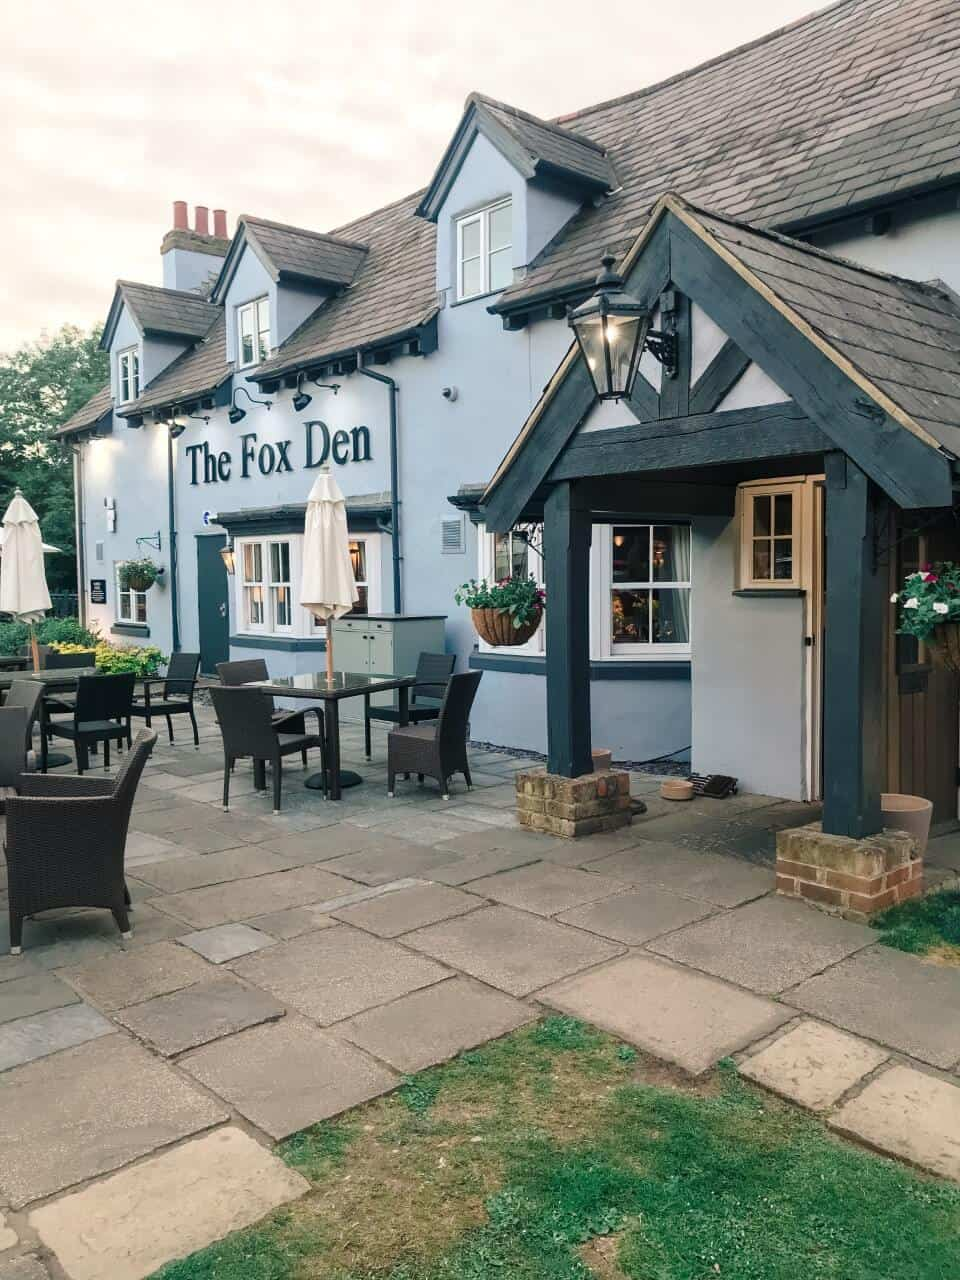 The Fox Den Stoke Gifford